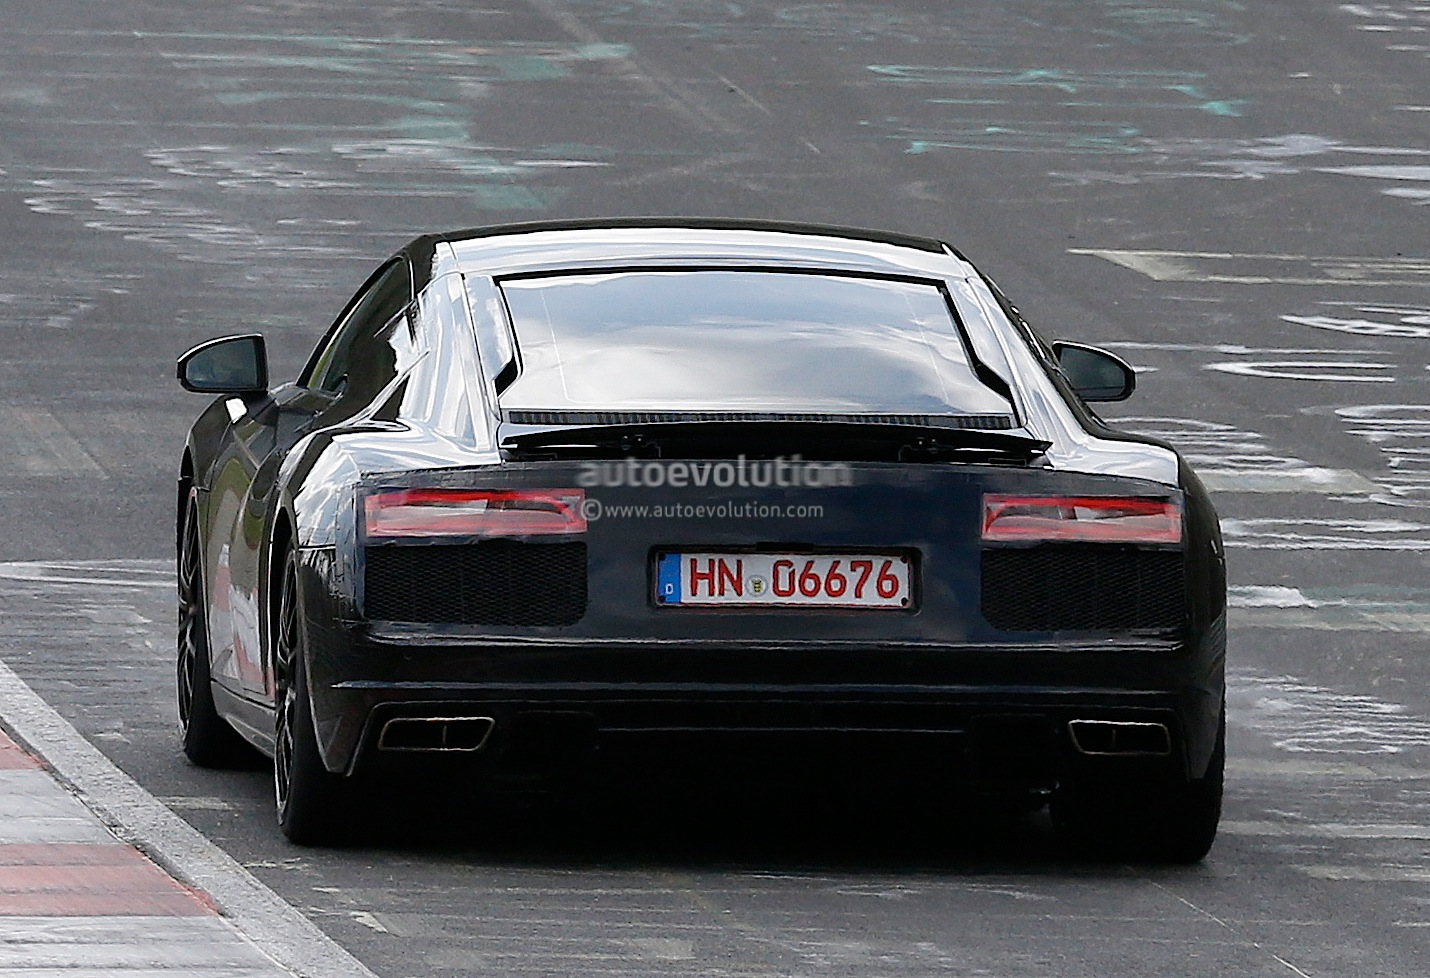 2015 - [Audi] R8 II / R8 II Spider All-new-audi-r8-loses-its-camo-during-latest-nurburgring-tests-photo-gallery_10